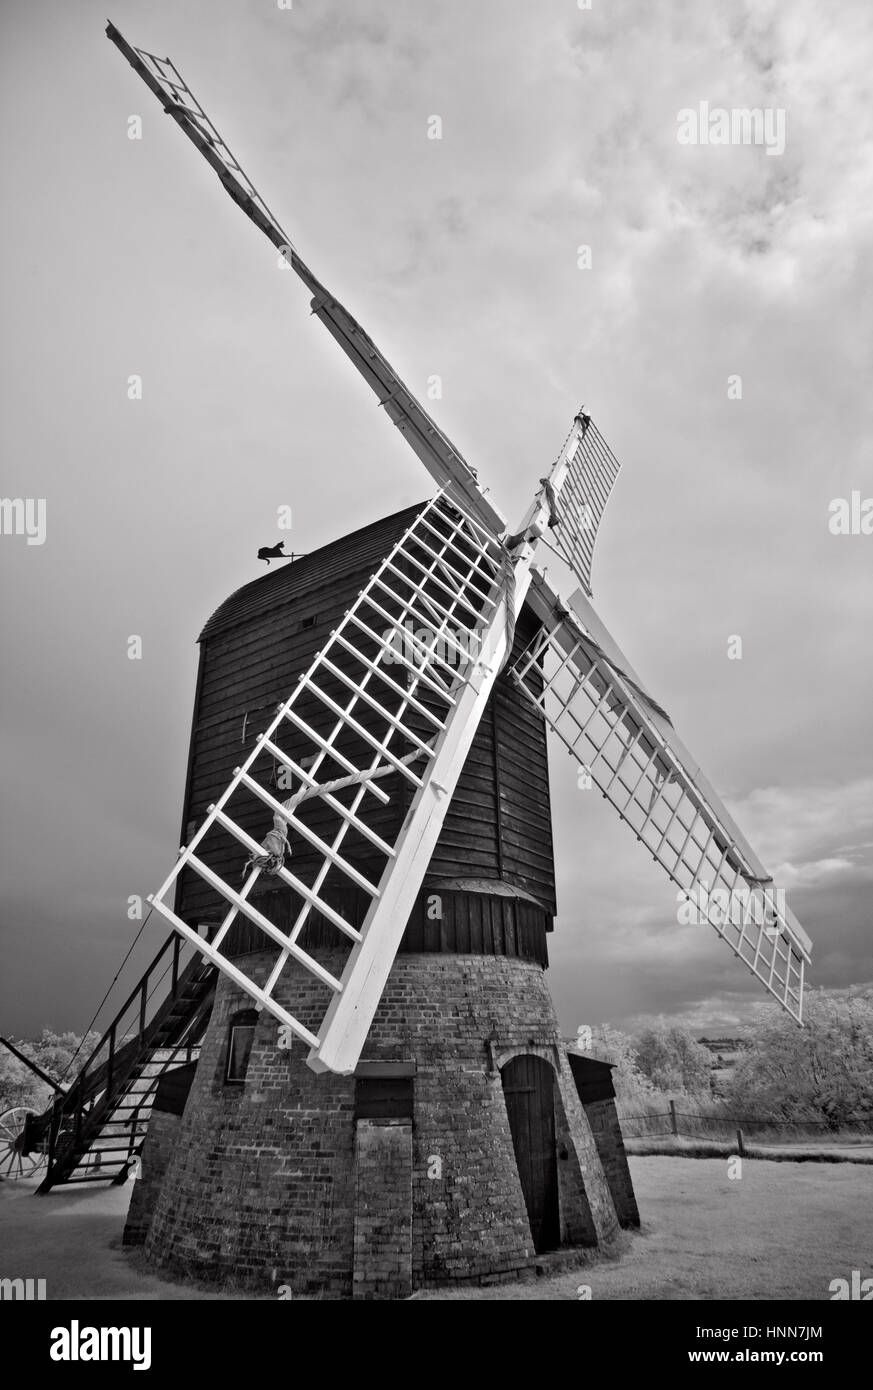 Black and white Infrared photograph of old windmill at Avoncroft Museum which is home to over 30 historic buildings - Stock Image